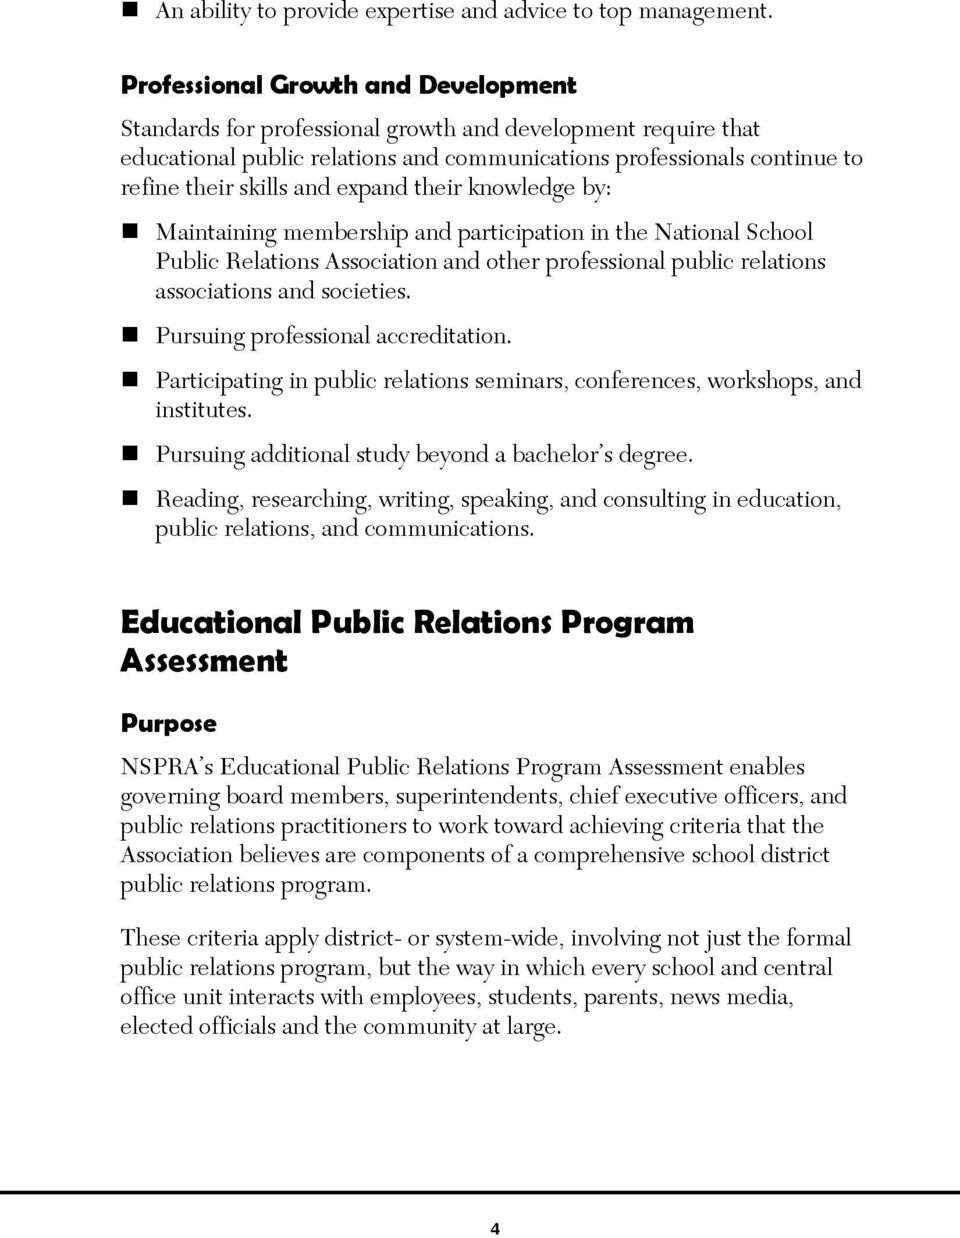 expand their knowledge by: Maintaining membership and participation in the National School Public Relations Association and other professional public relations associations and societies.